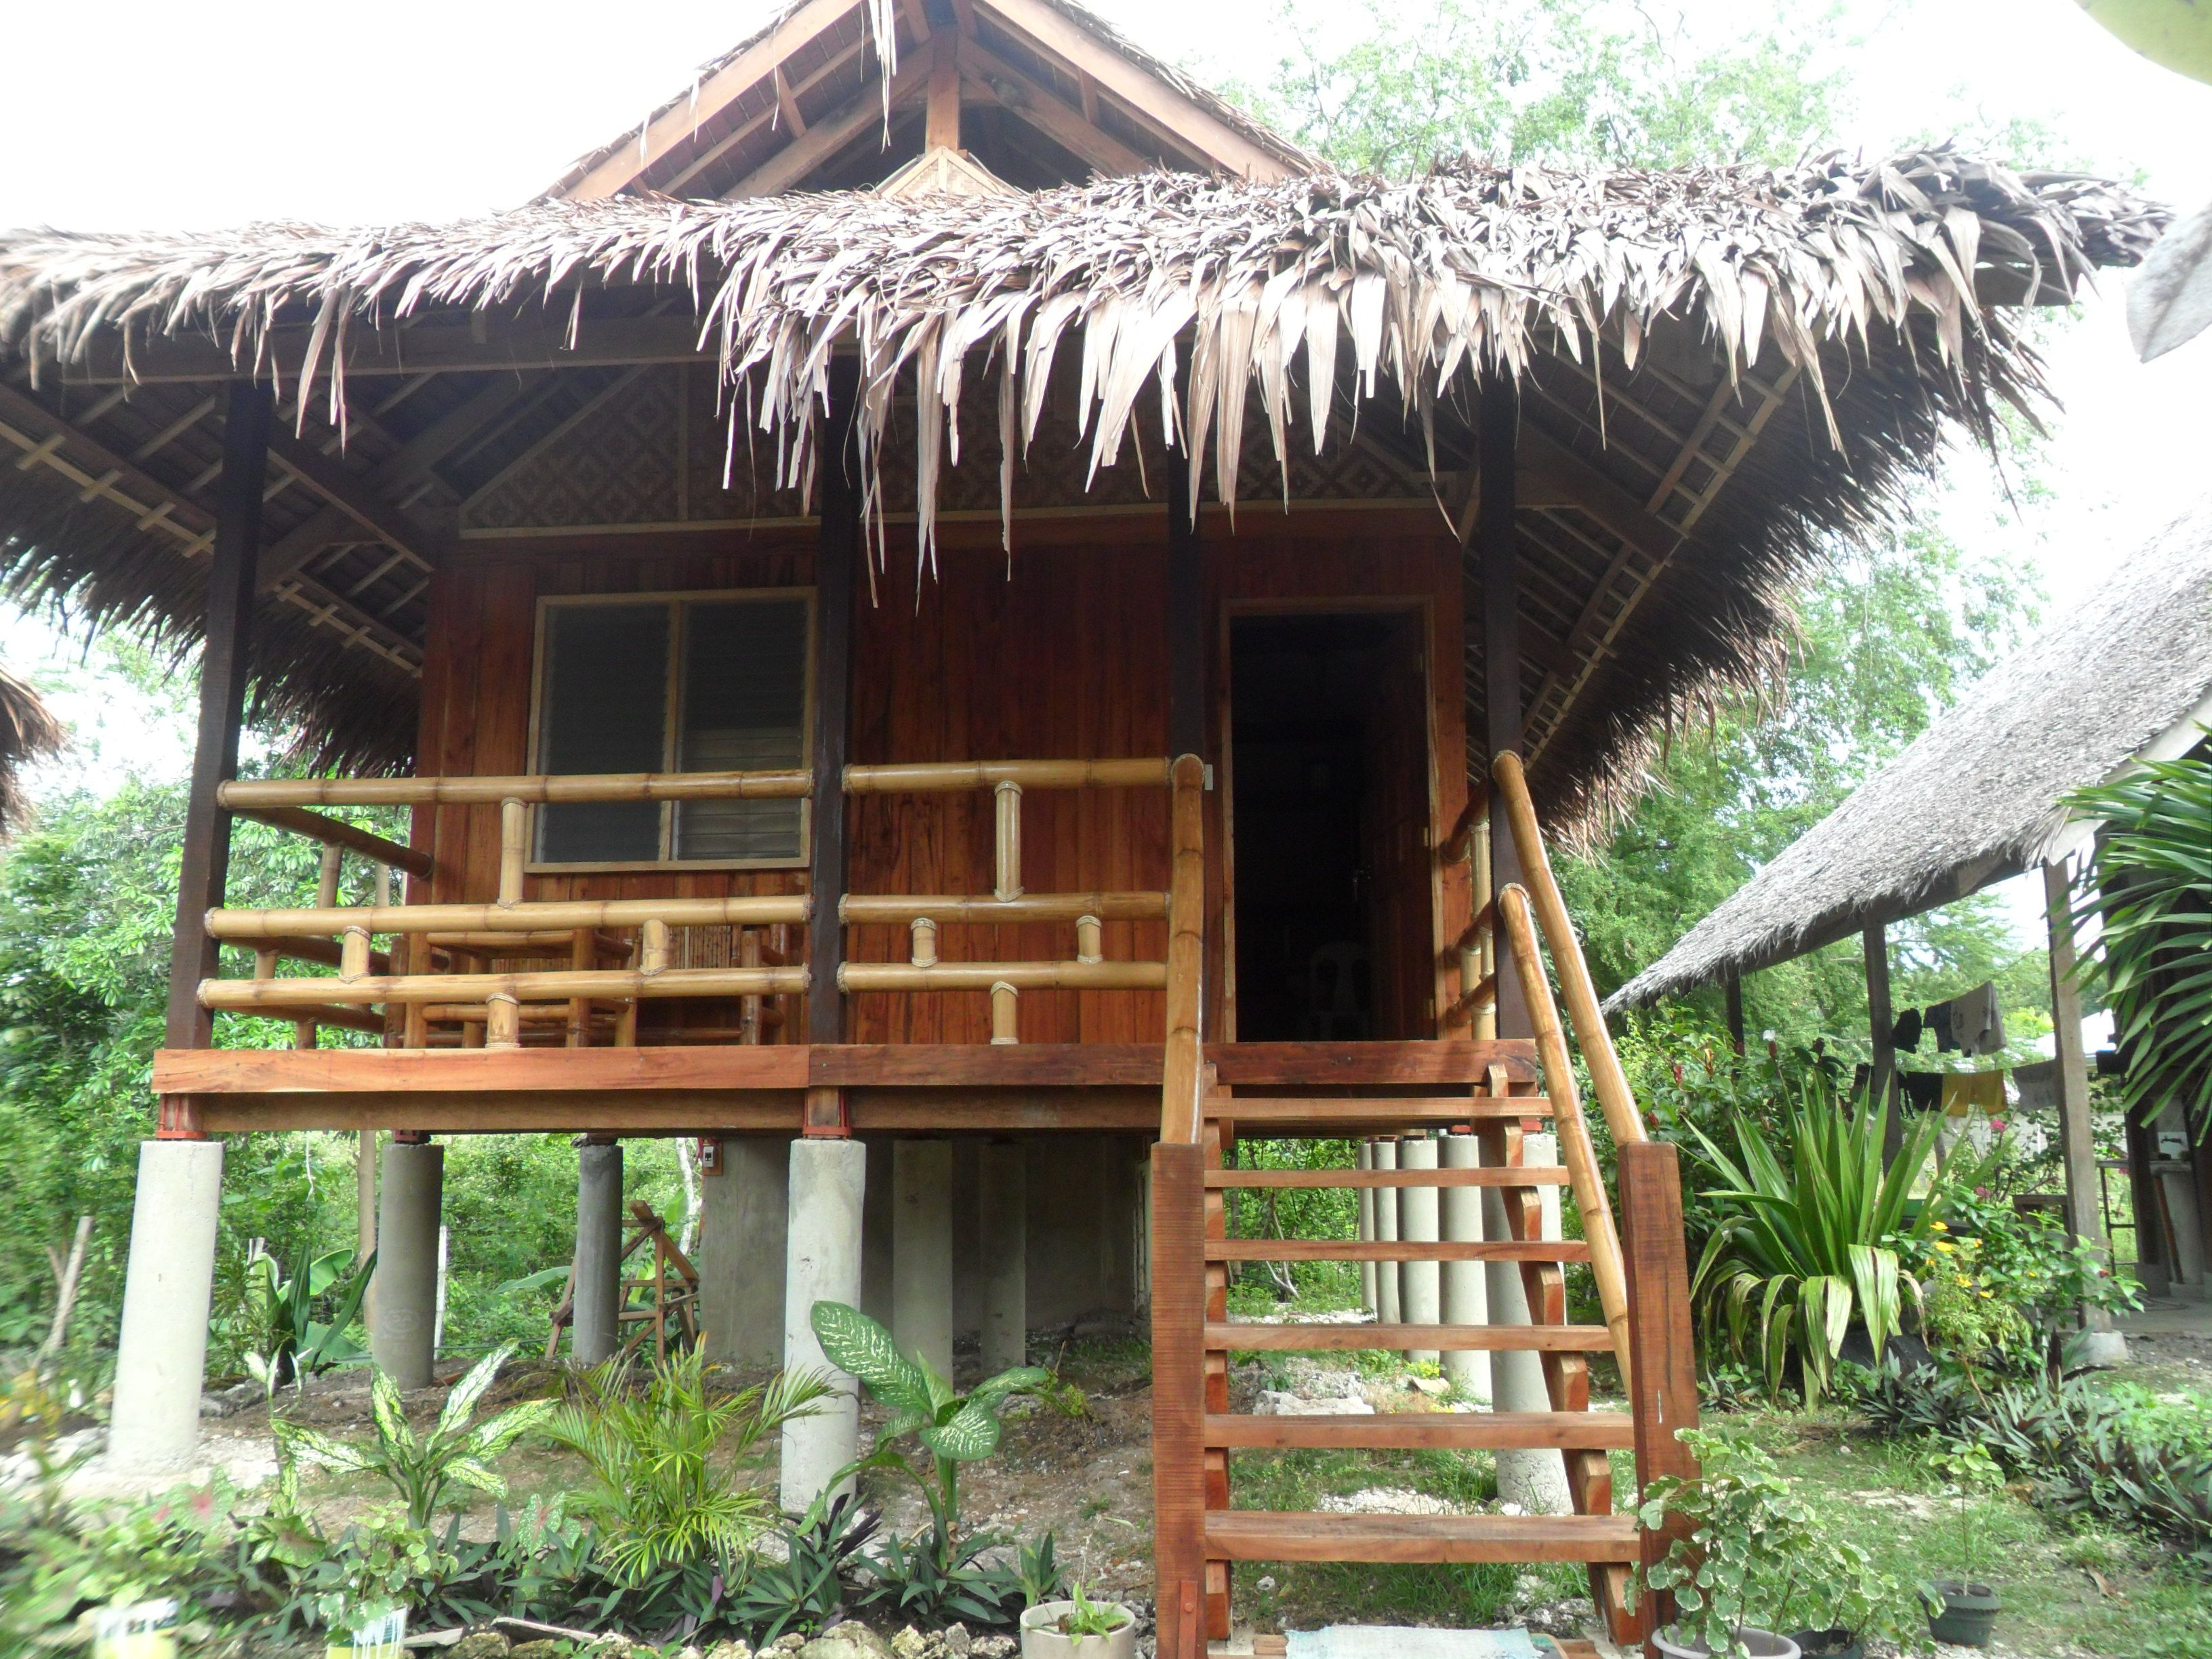 House design nipa hut - 30 Bamboo Houses For A Totally Relaxed Style Bamboo Tree House And Tree Houses